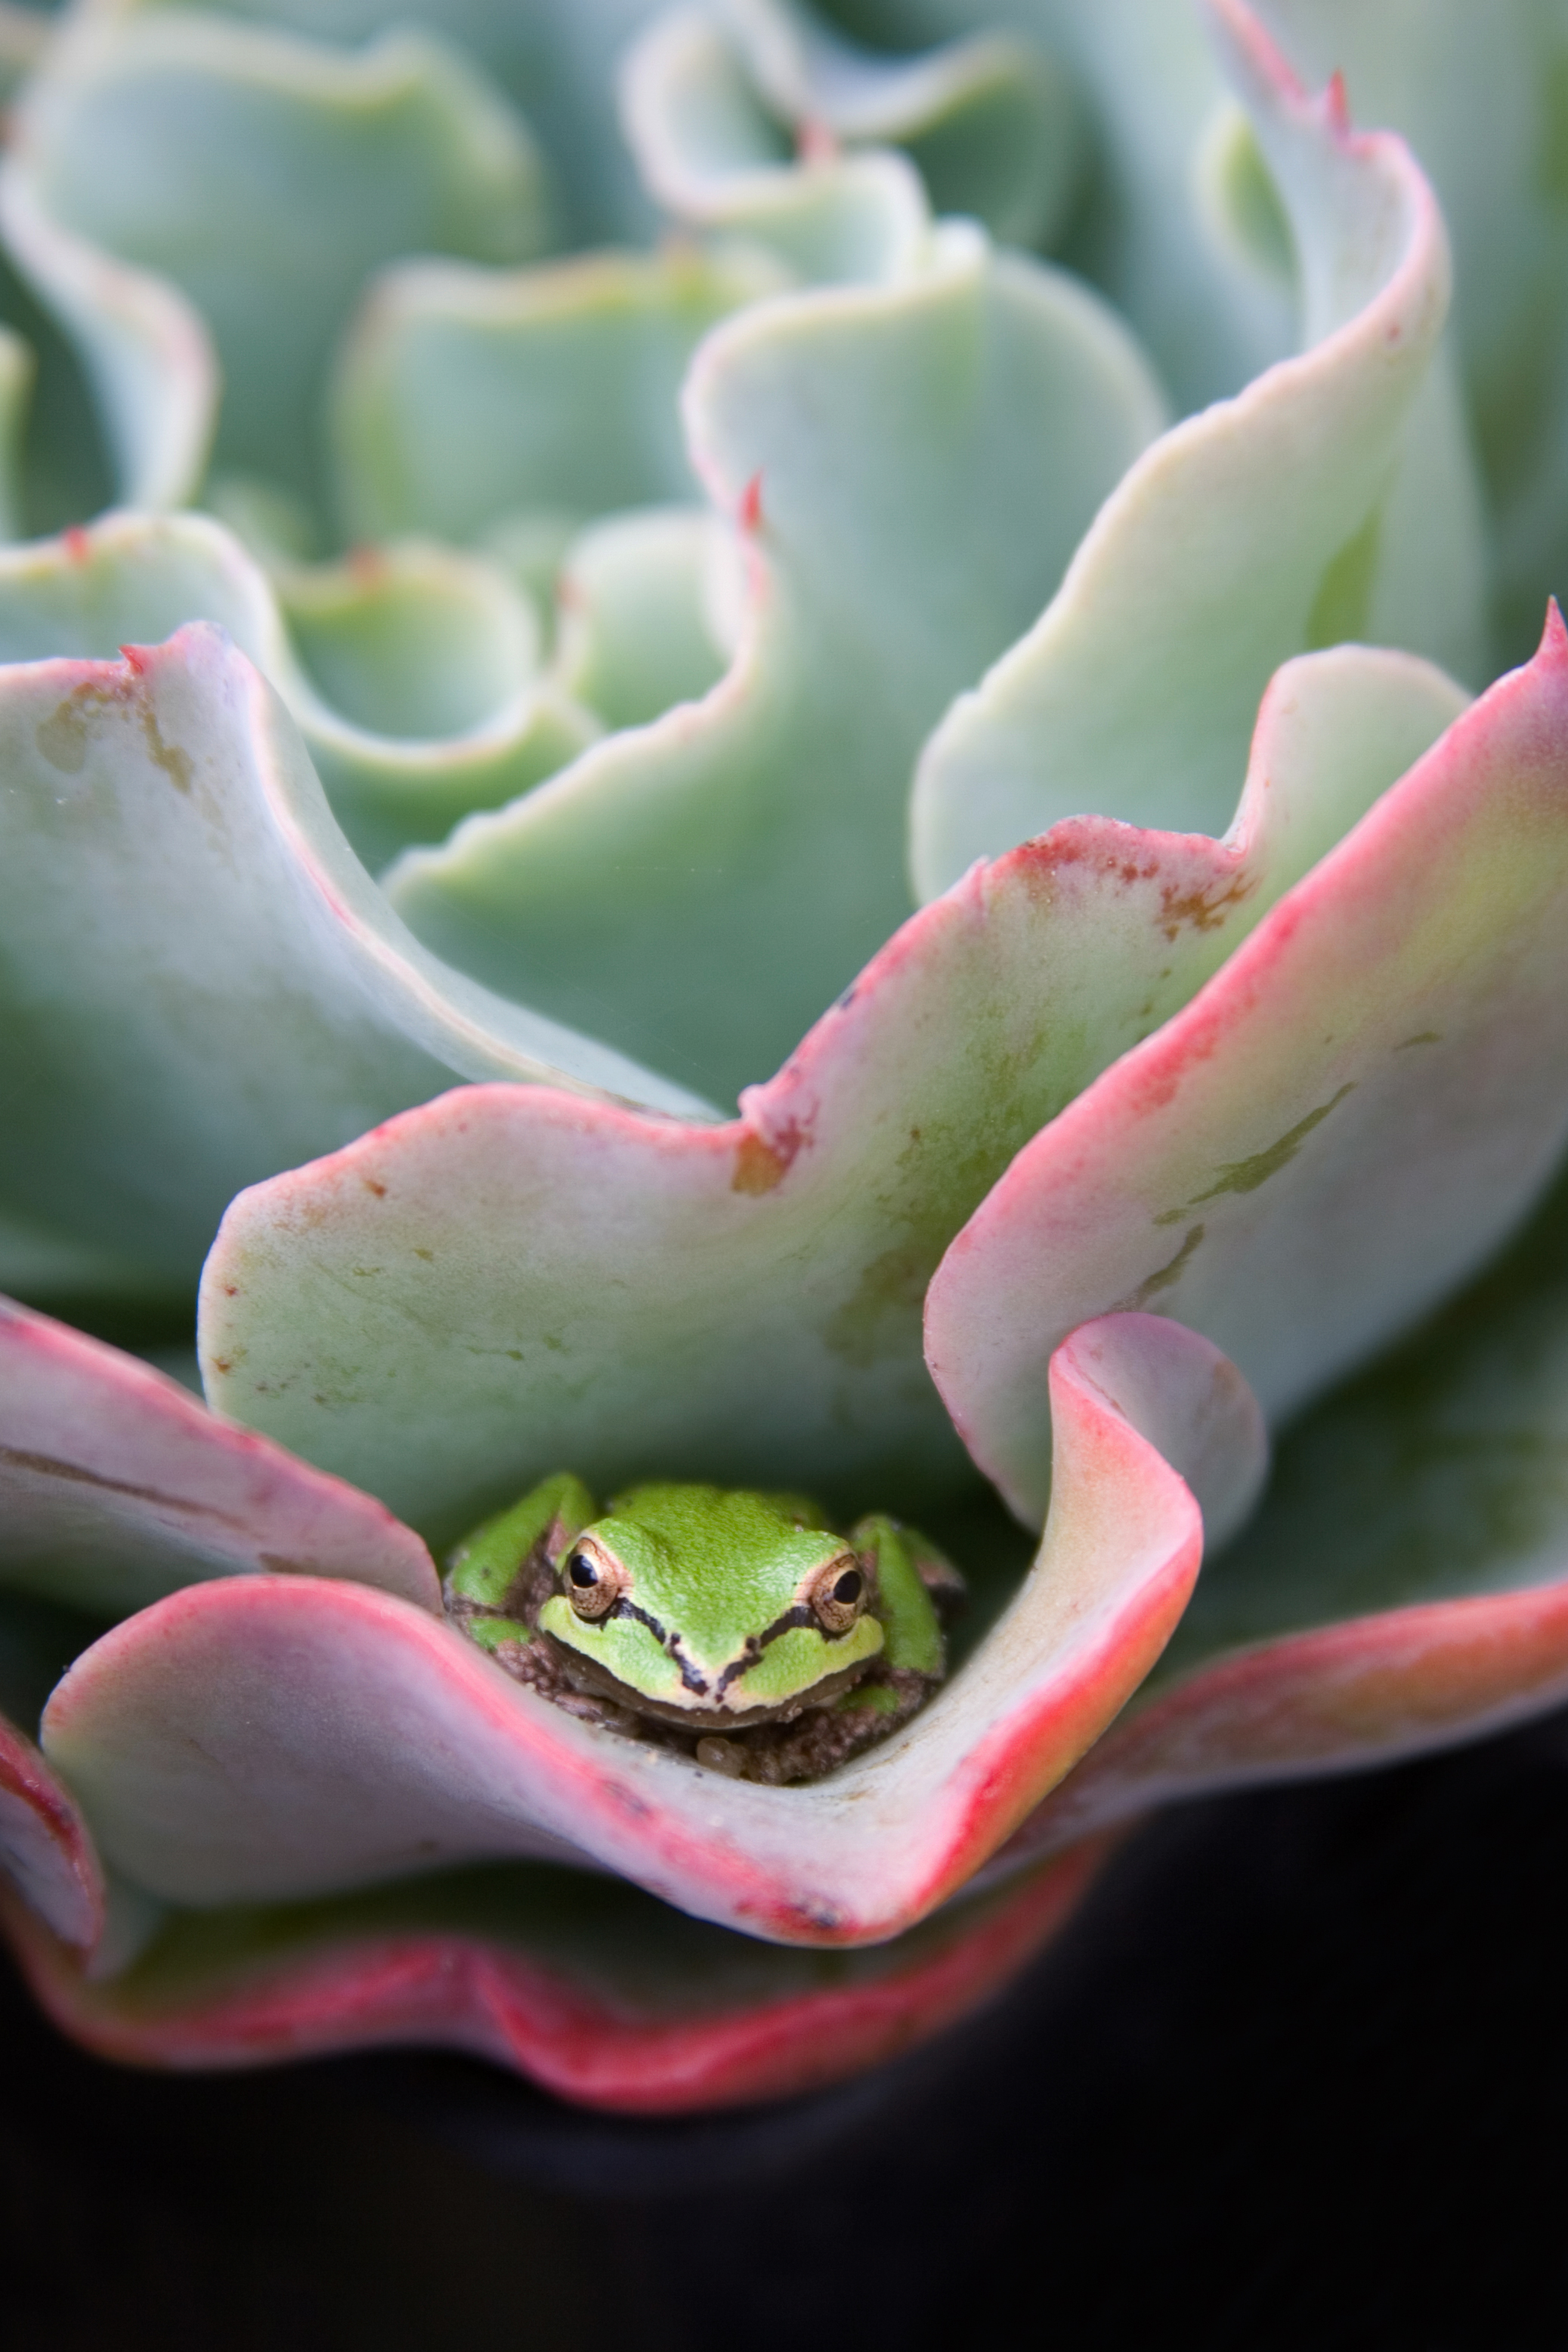 This is a stock photo of a bright green frog hiding in an echeveria plant.